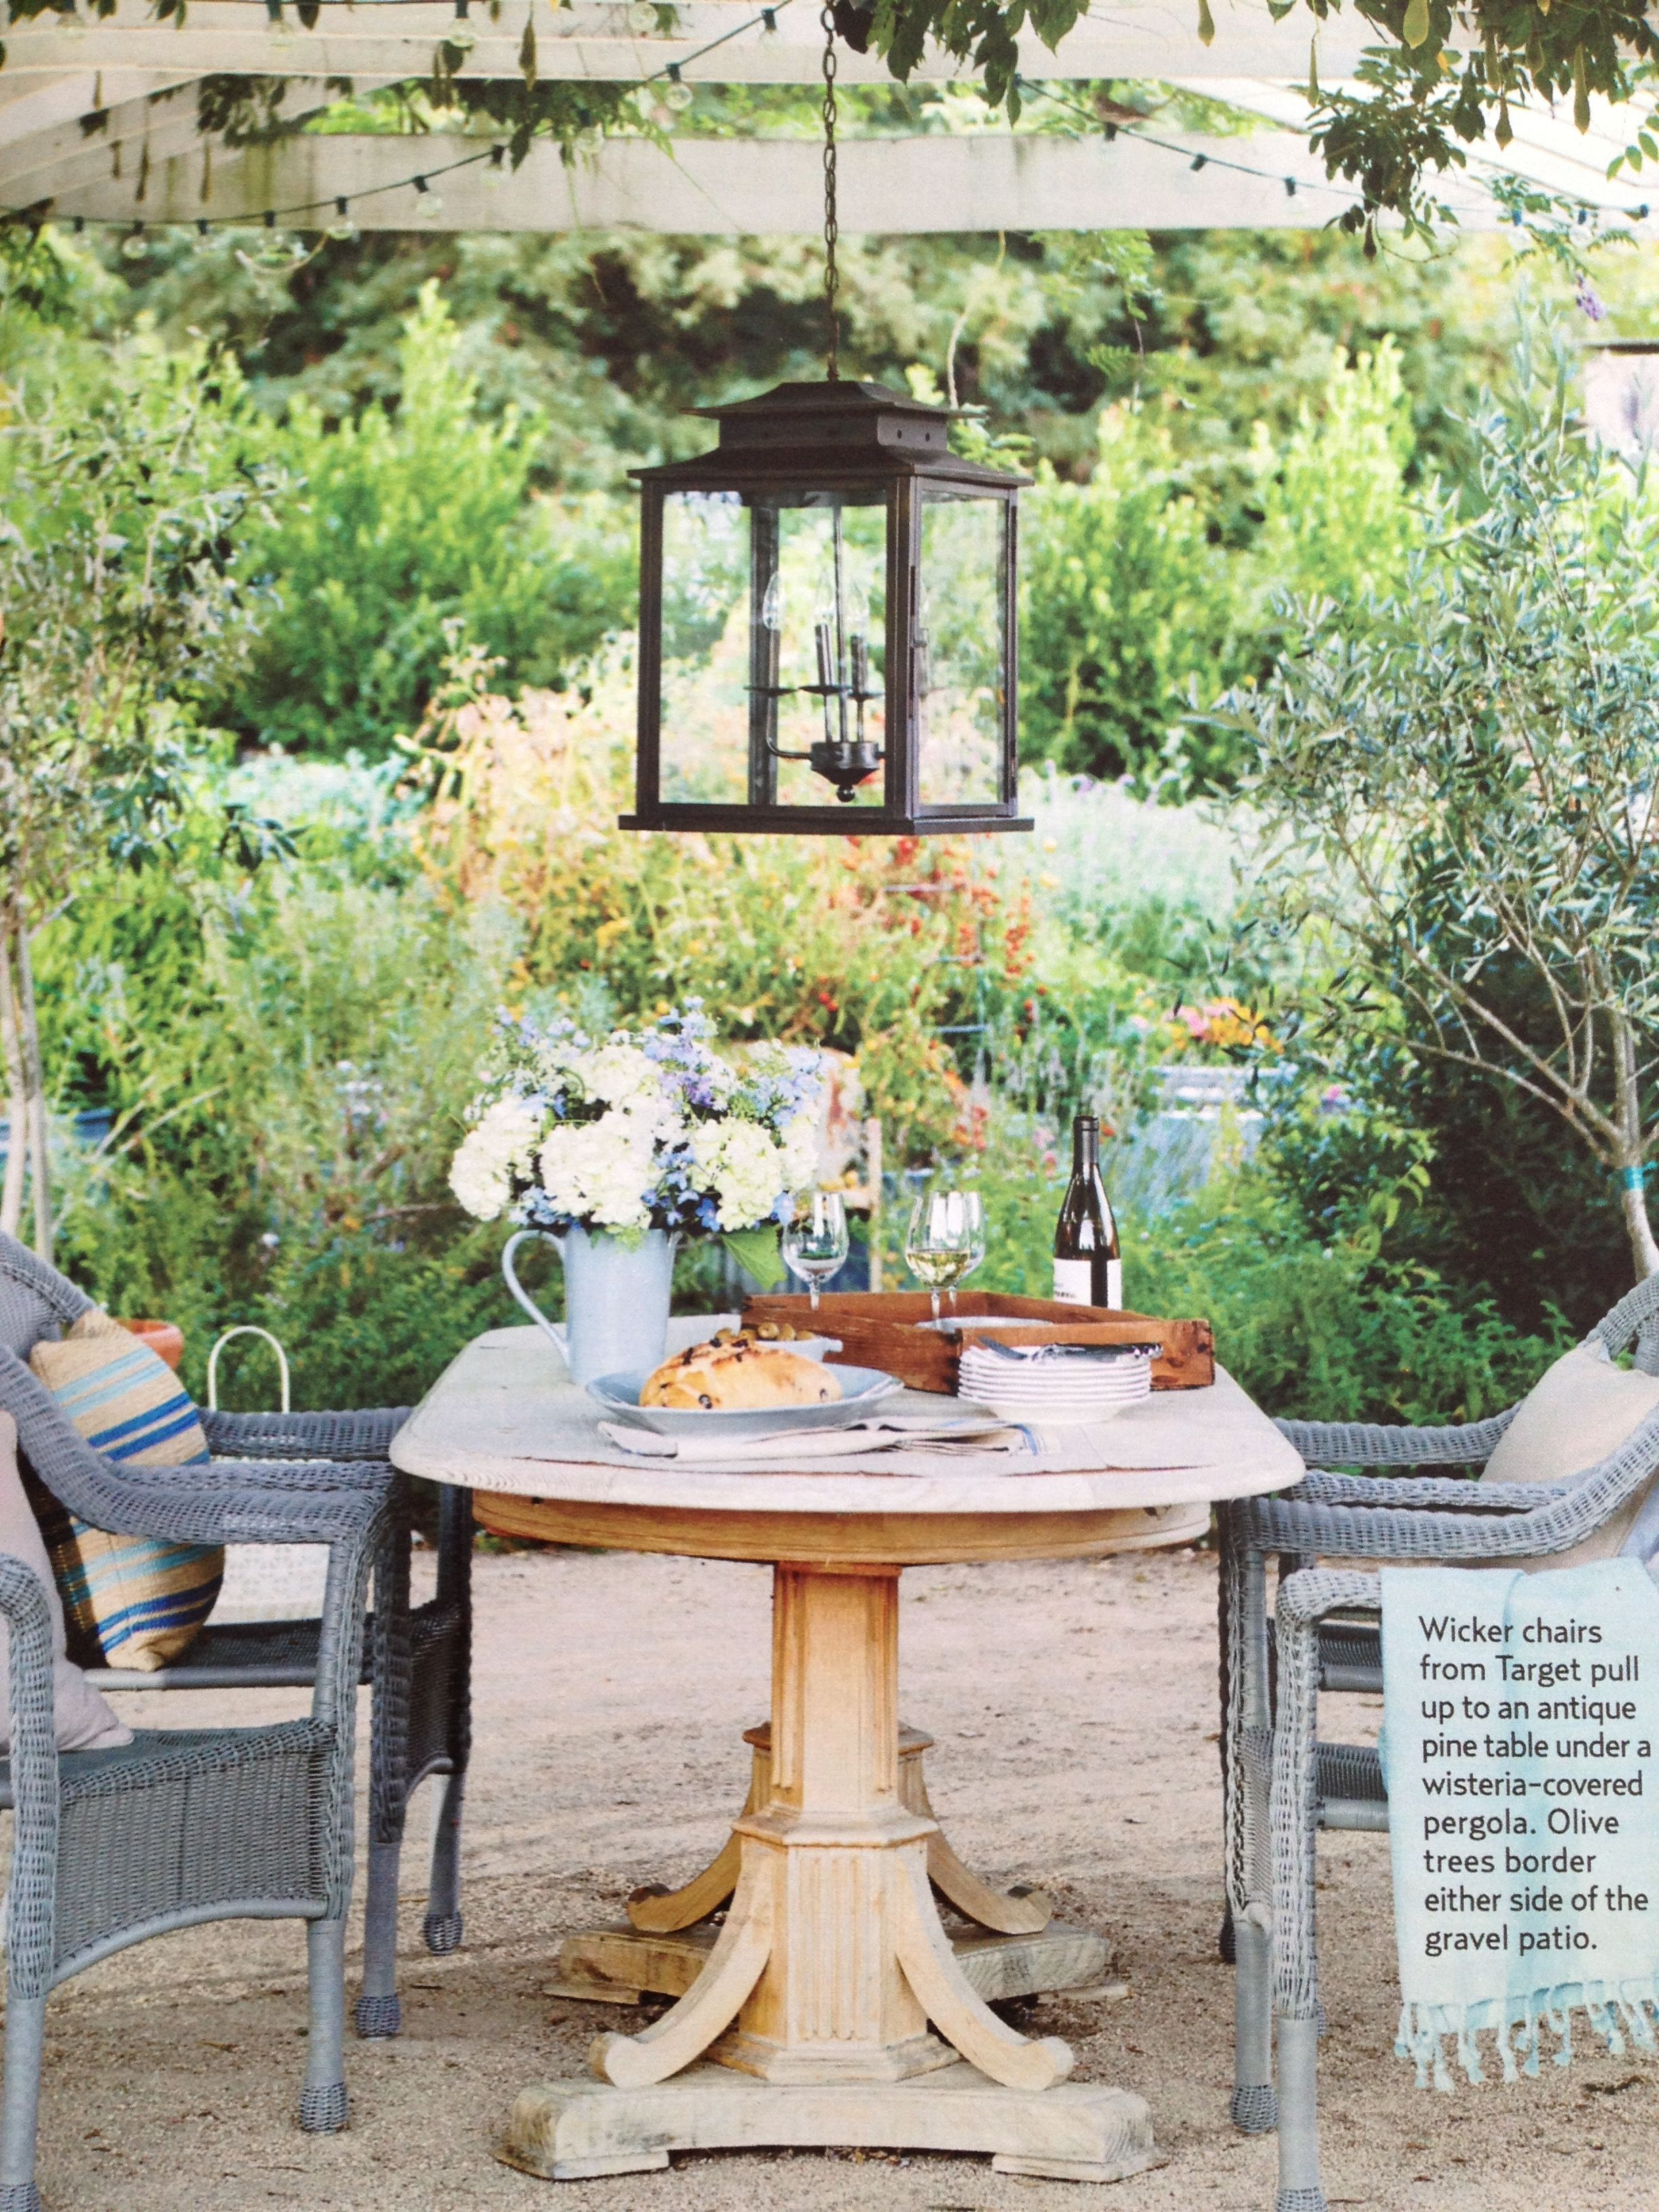 Table Lantern Painted Wicker Chairs - Country Living